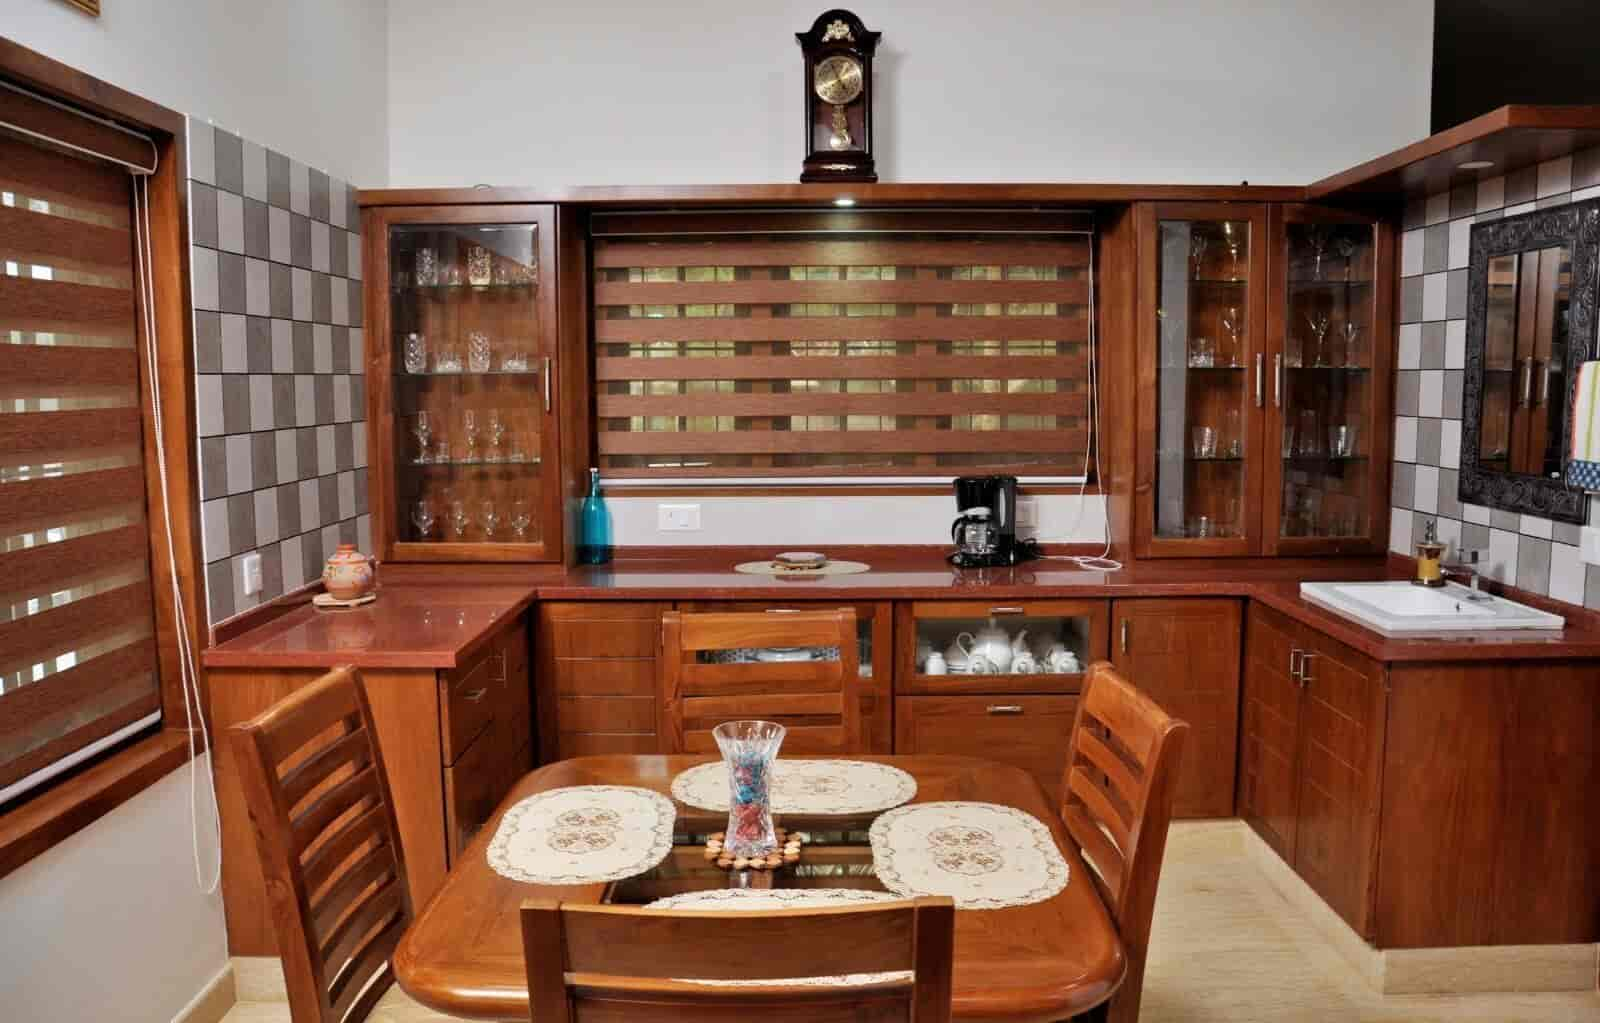 BELL BIRD Kitchen AND HOME STYLE, Edapally   Interior Designers In  Ernakulam   Justdial